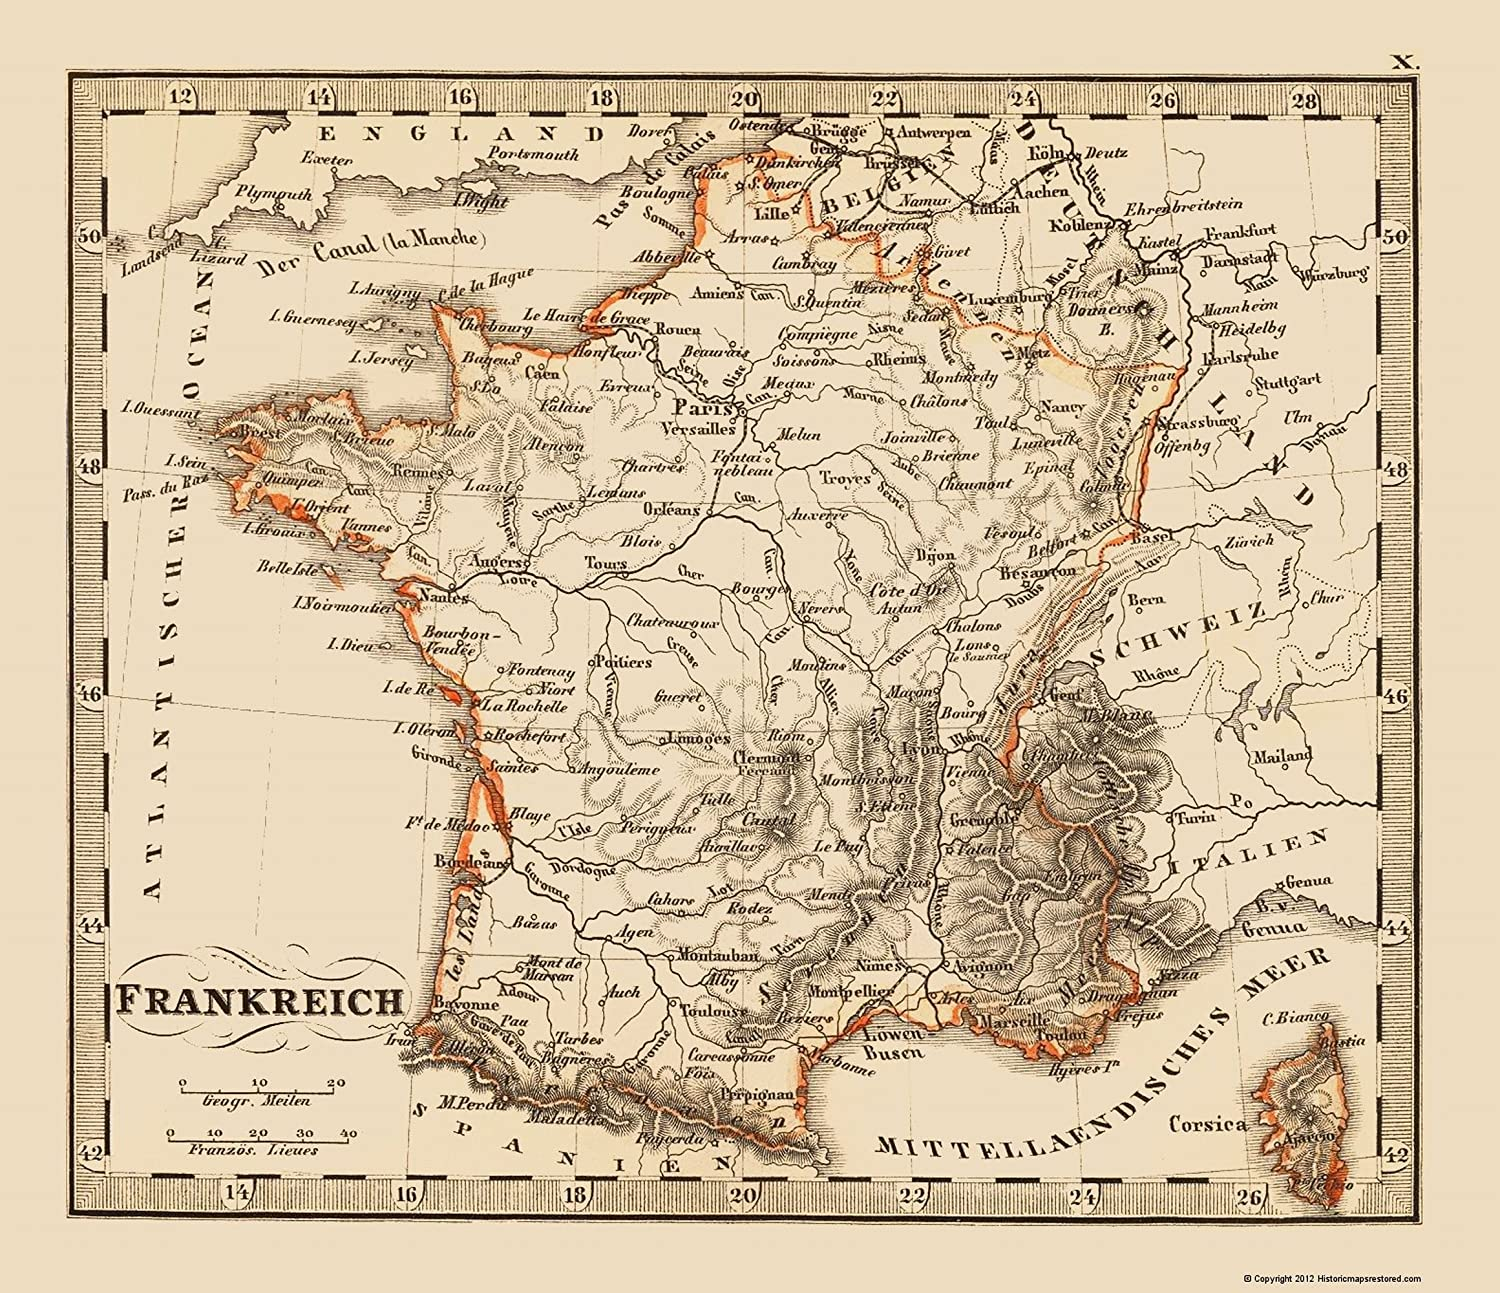 Map Of France 1500.Amazon Com Old France Map France Stieler 1852 23 X 26 69